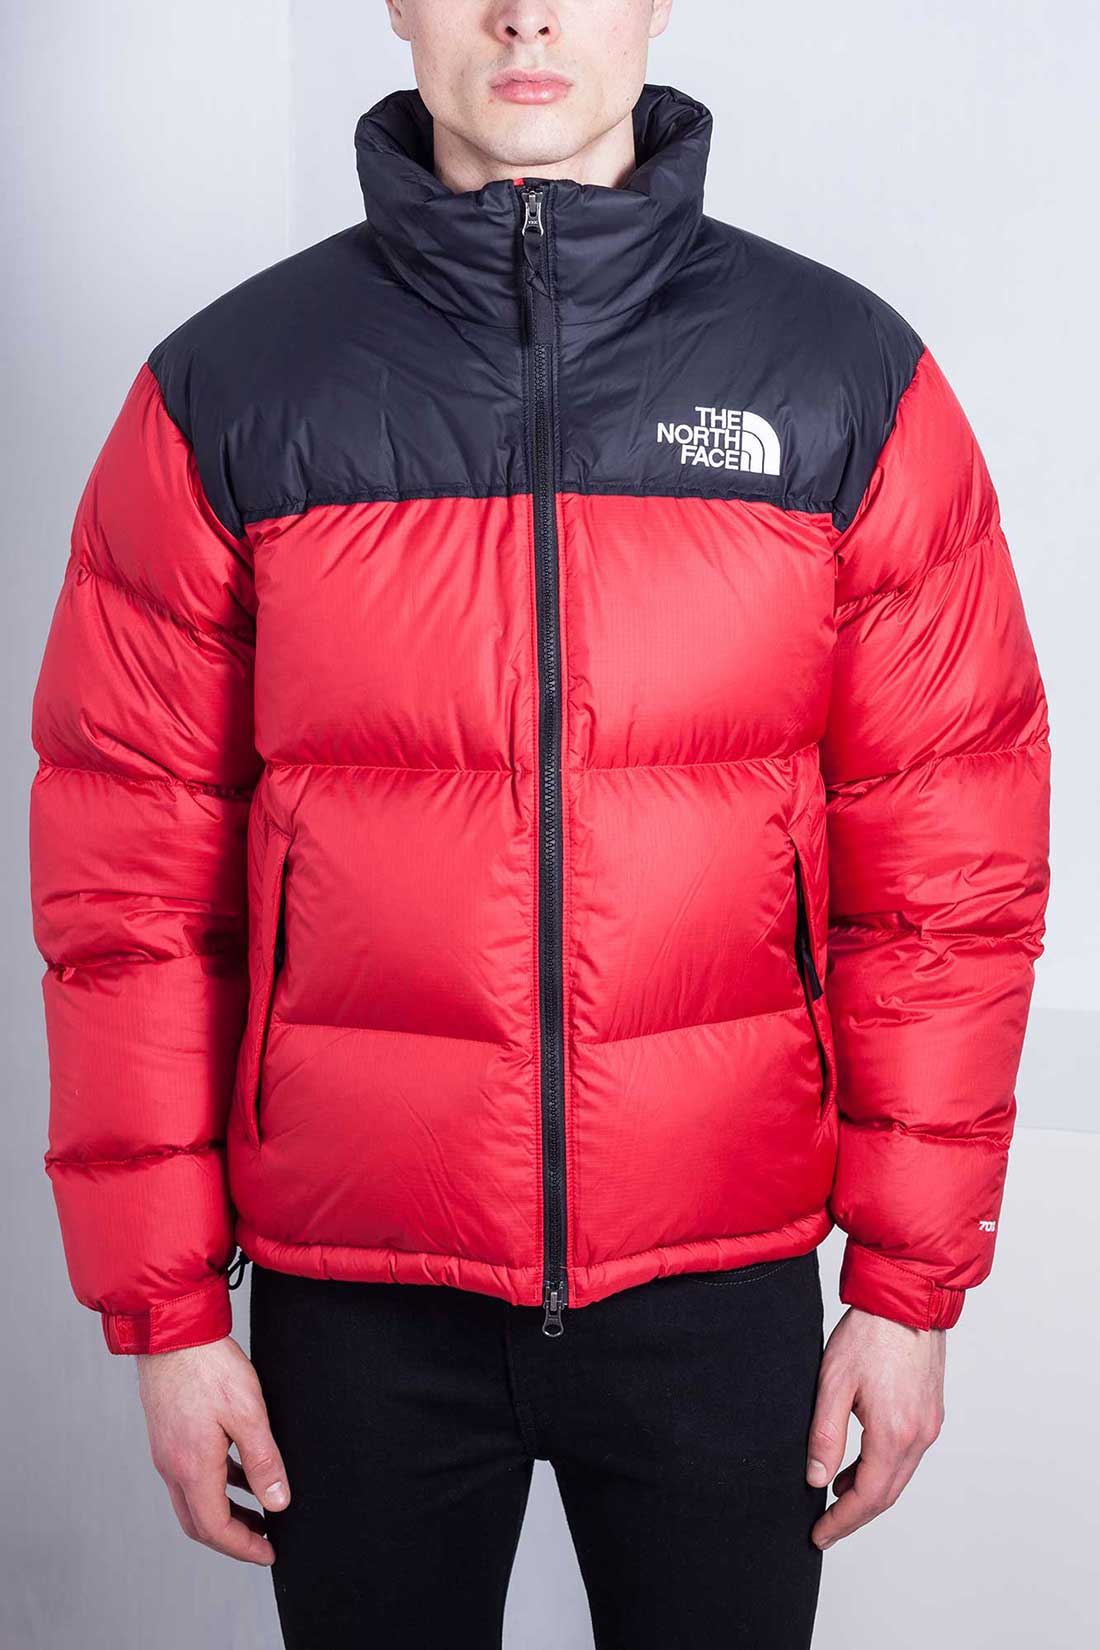 editoriale costola Moderatore  THE NORTH FACE Uomo - Piumino Retro Nuptse 1992 rosso - Push96.com